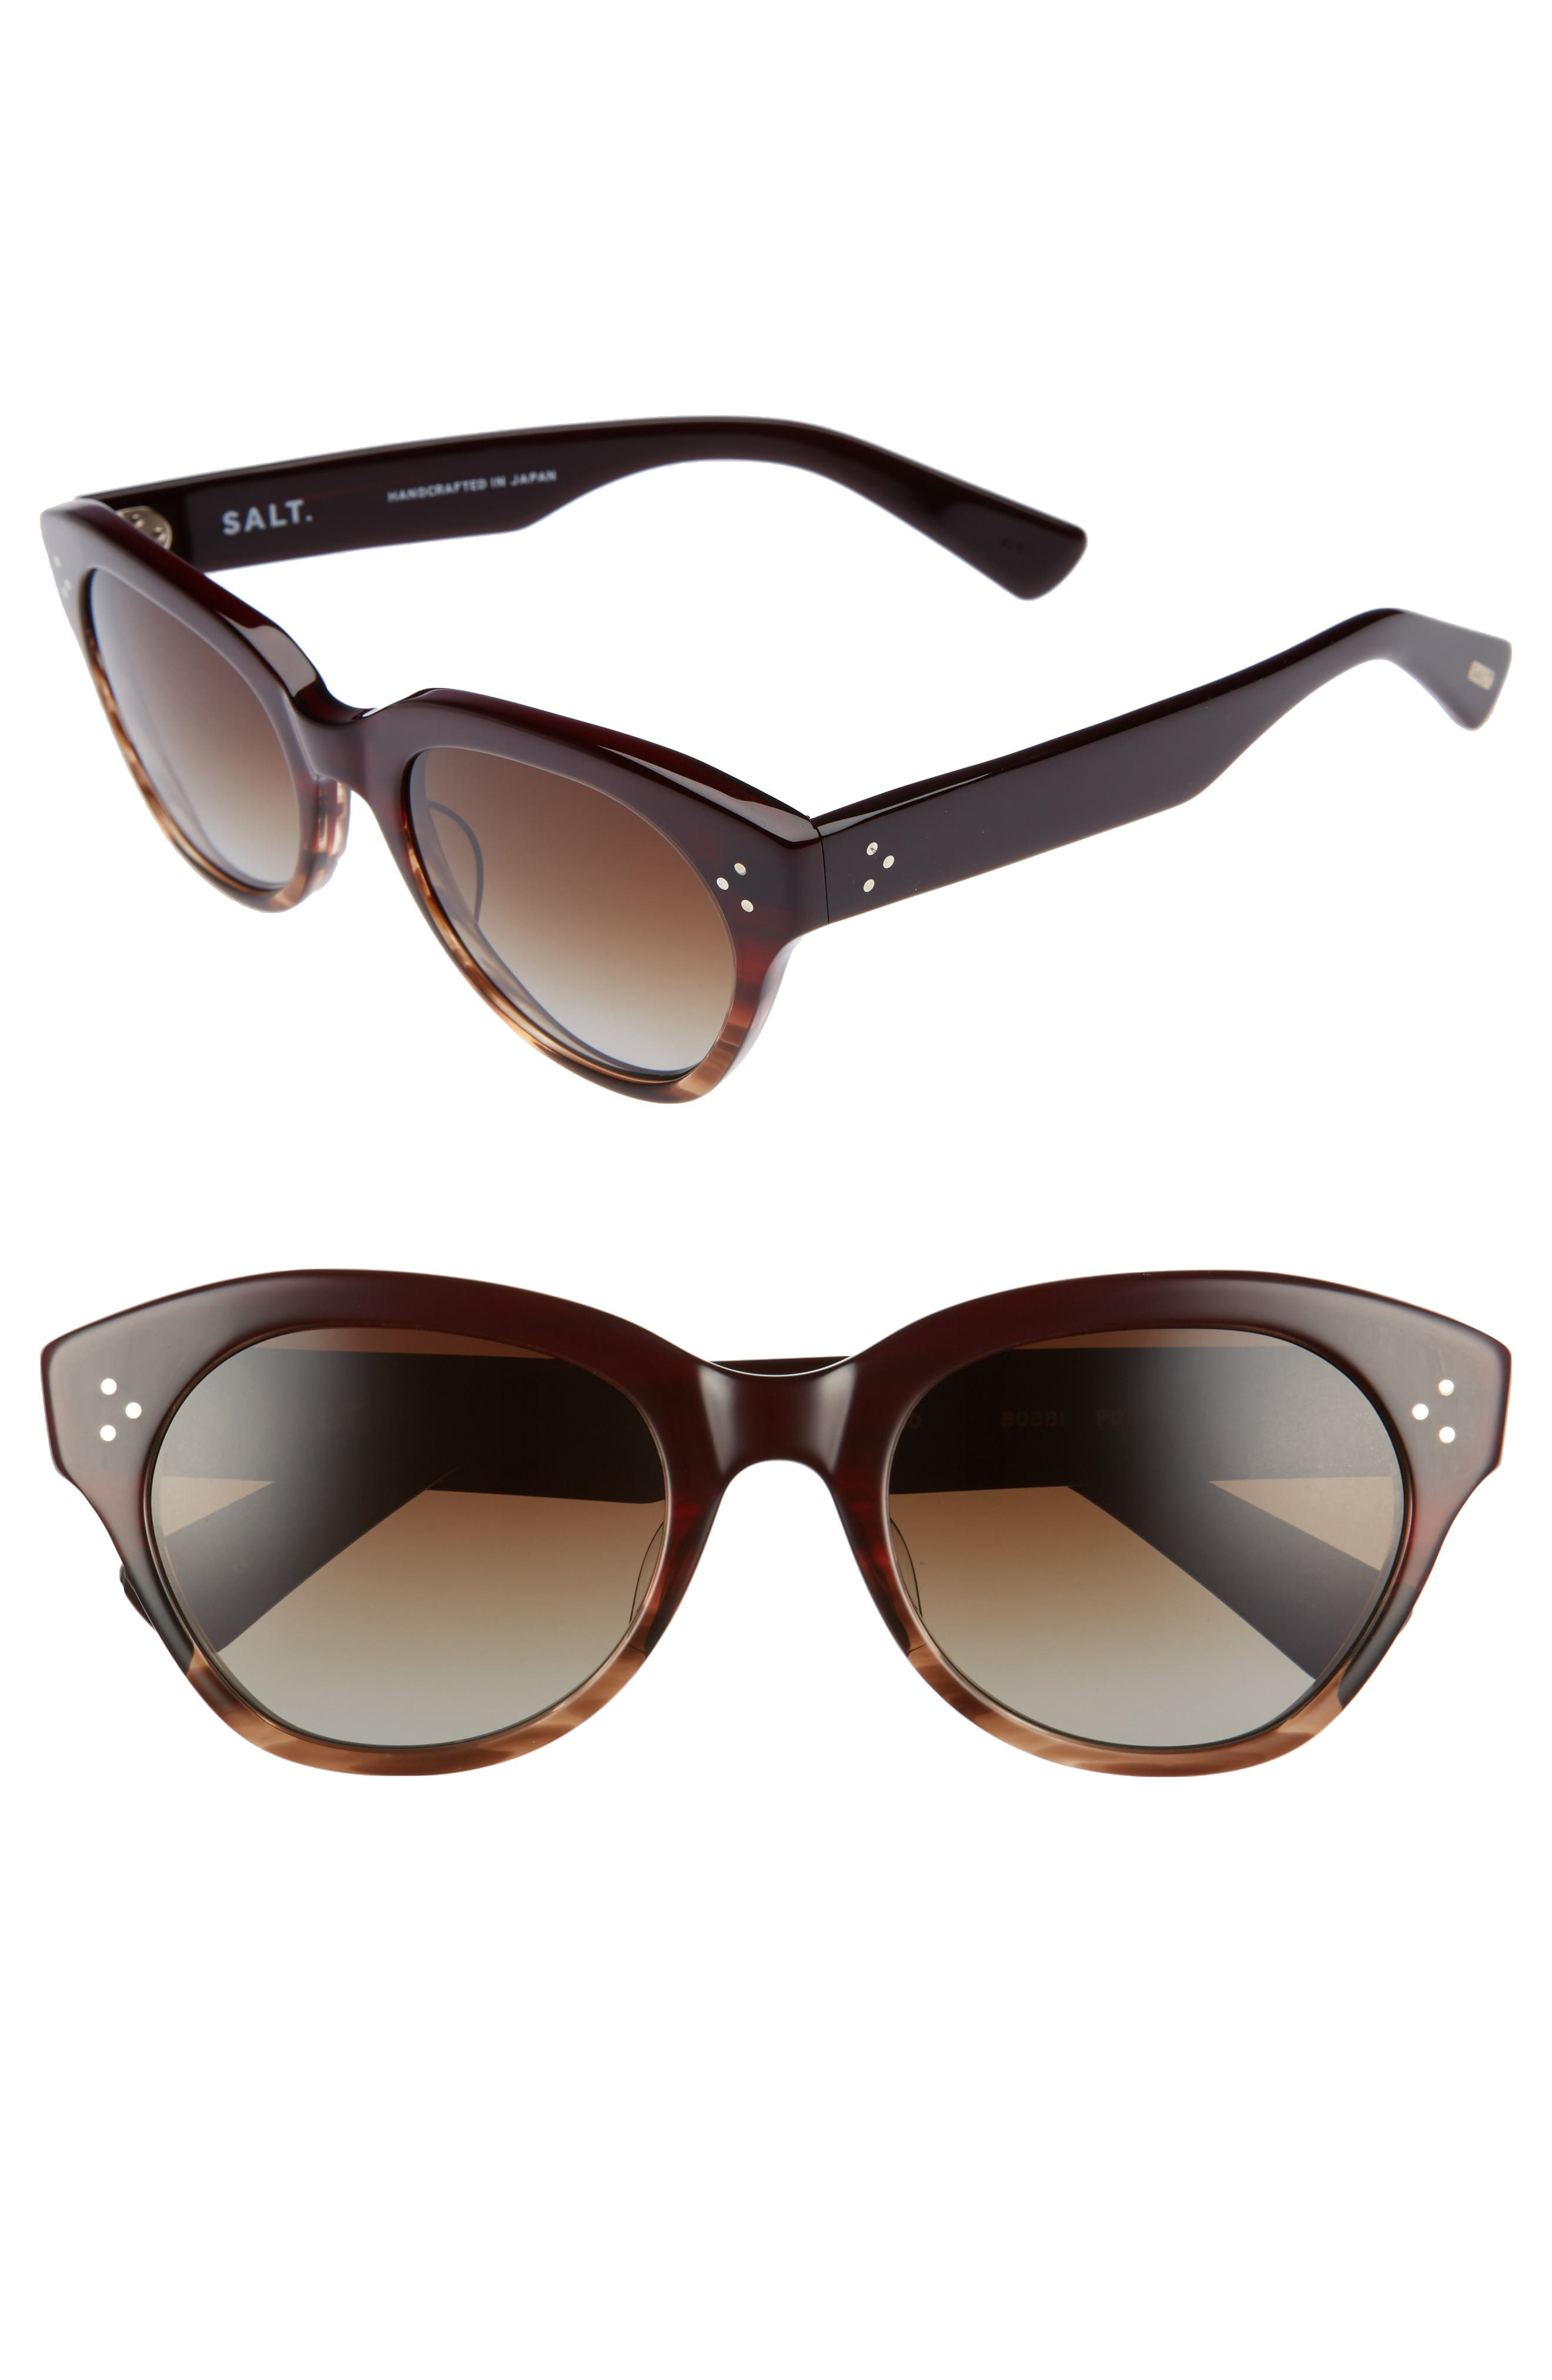 Alternate Image 1 Selected - Salt 53mm Cat Eye Polarized Sunglasses